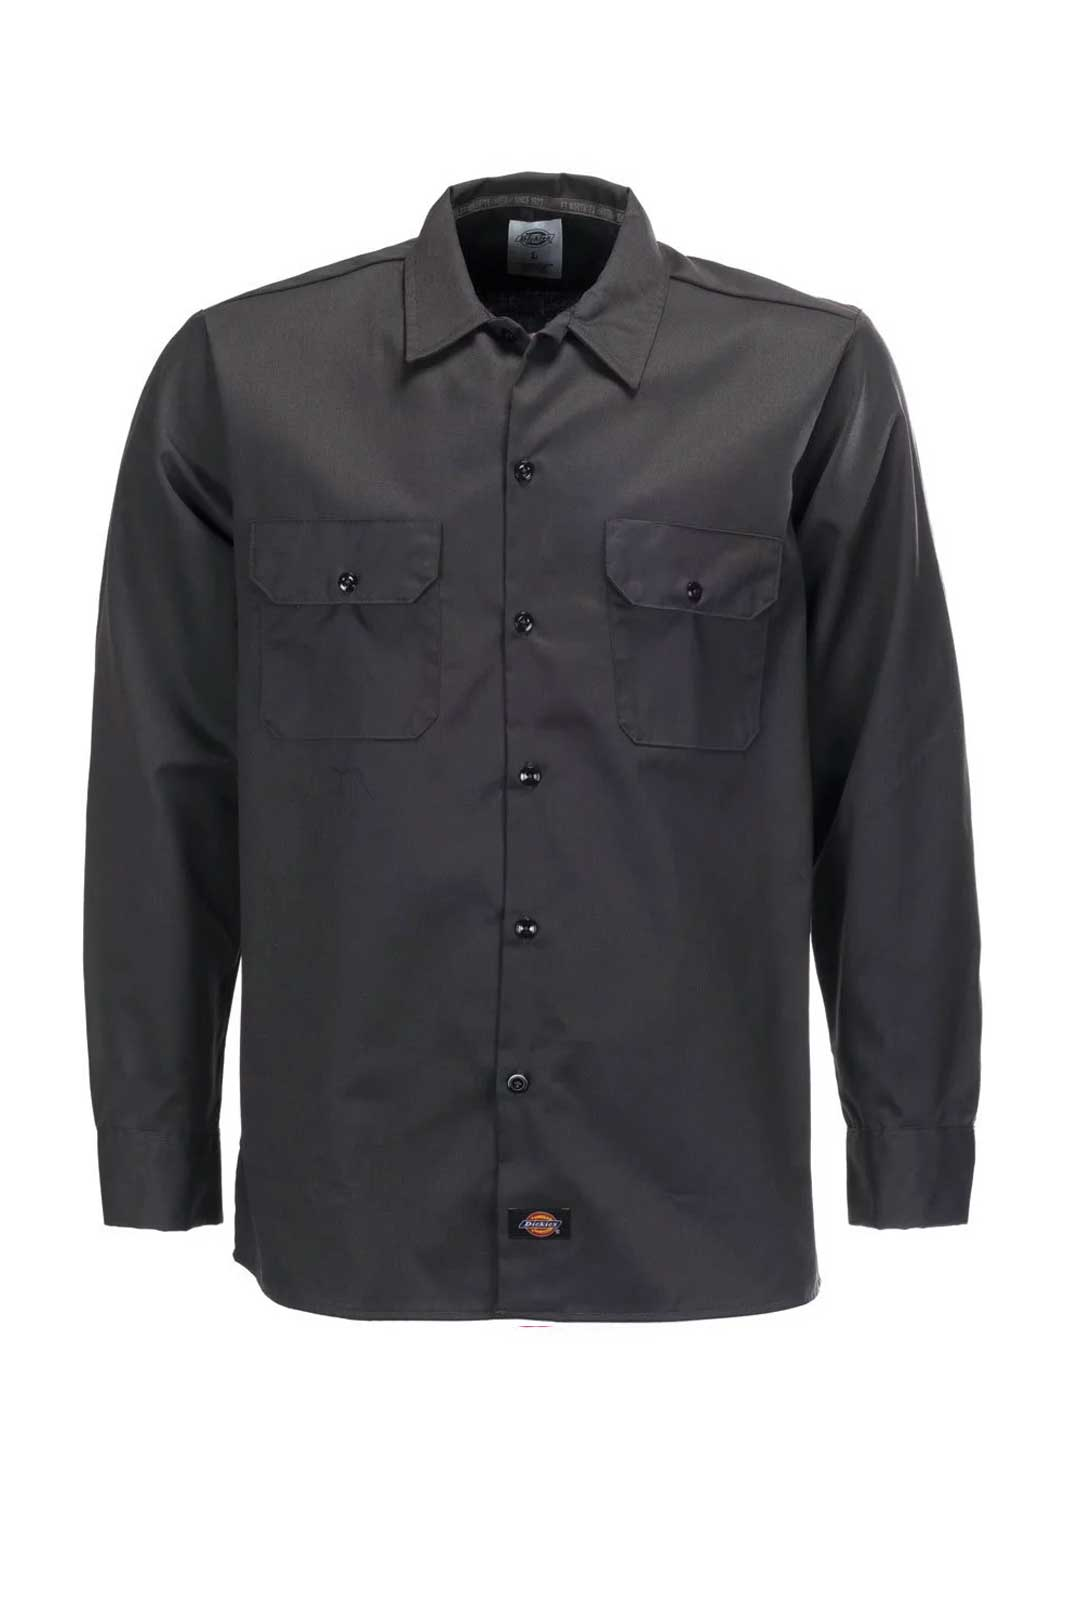 L/S Slim Shirt Work Shirt Front